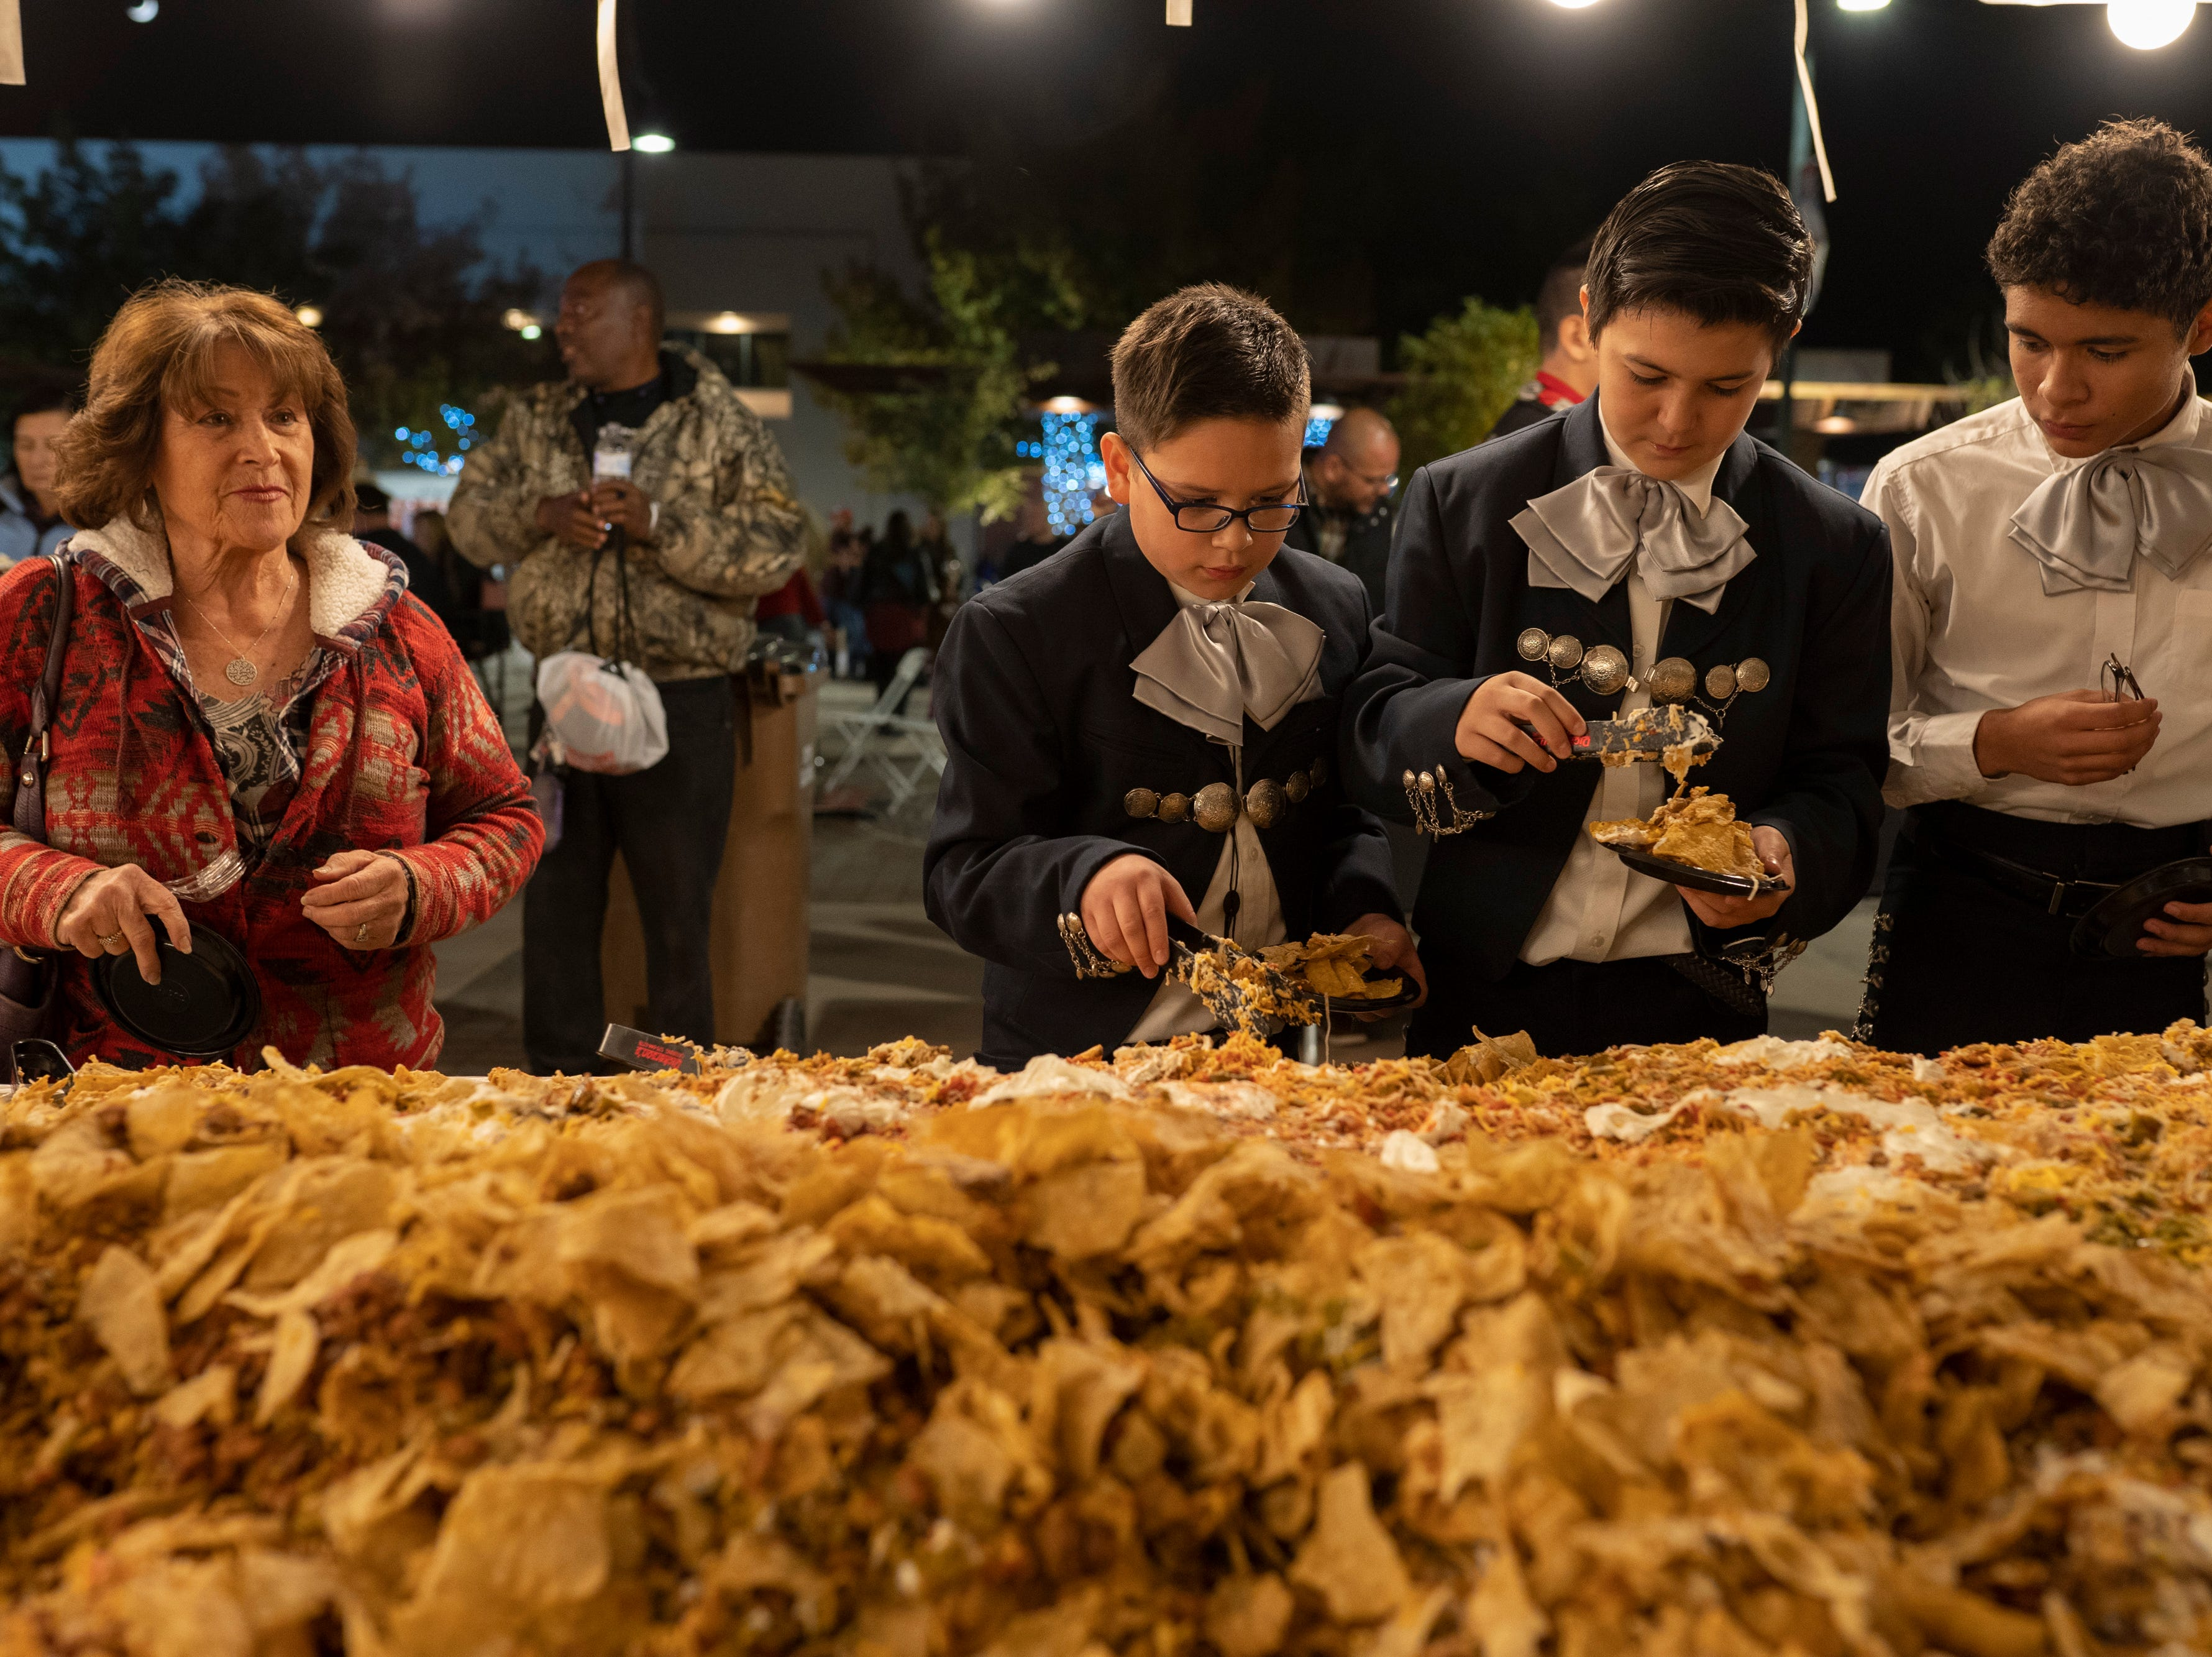 Las Cruces has world's largest serving of nachos — 5,039 pounds, 110 feet long